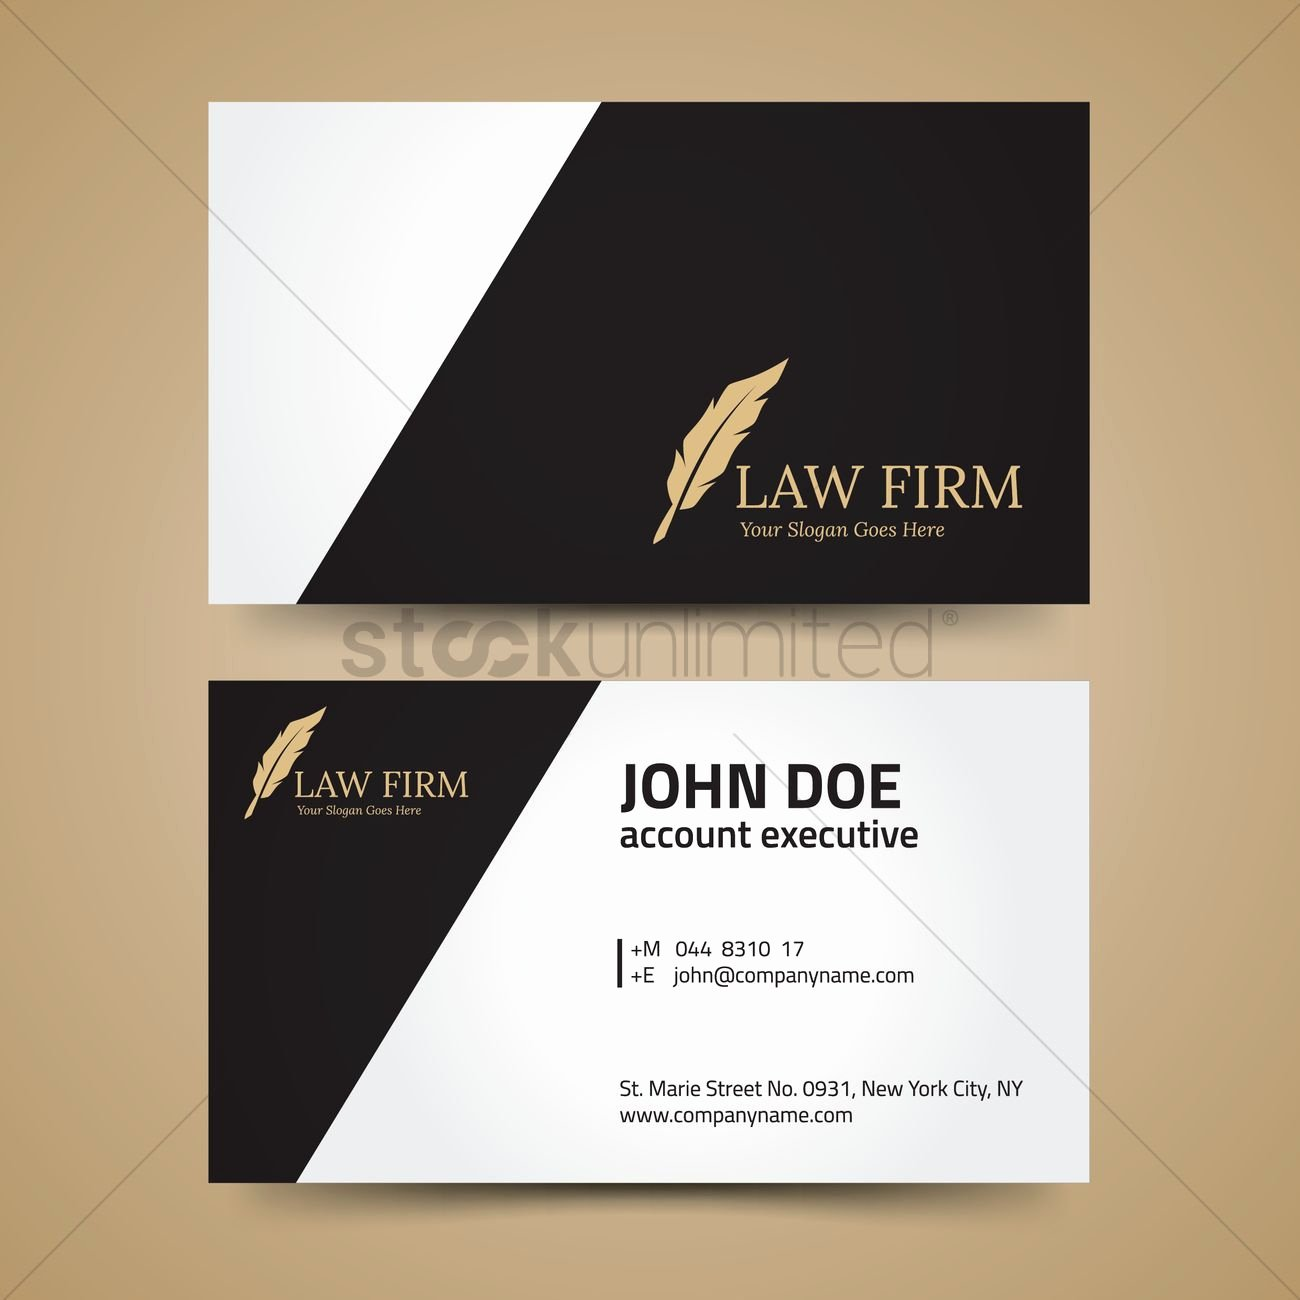 Law Firm Business Cards Lovely Business Cards for attorneys